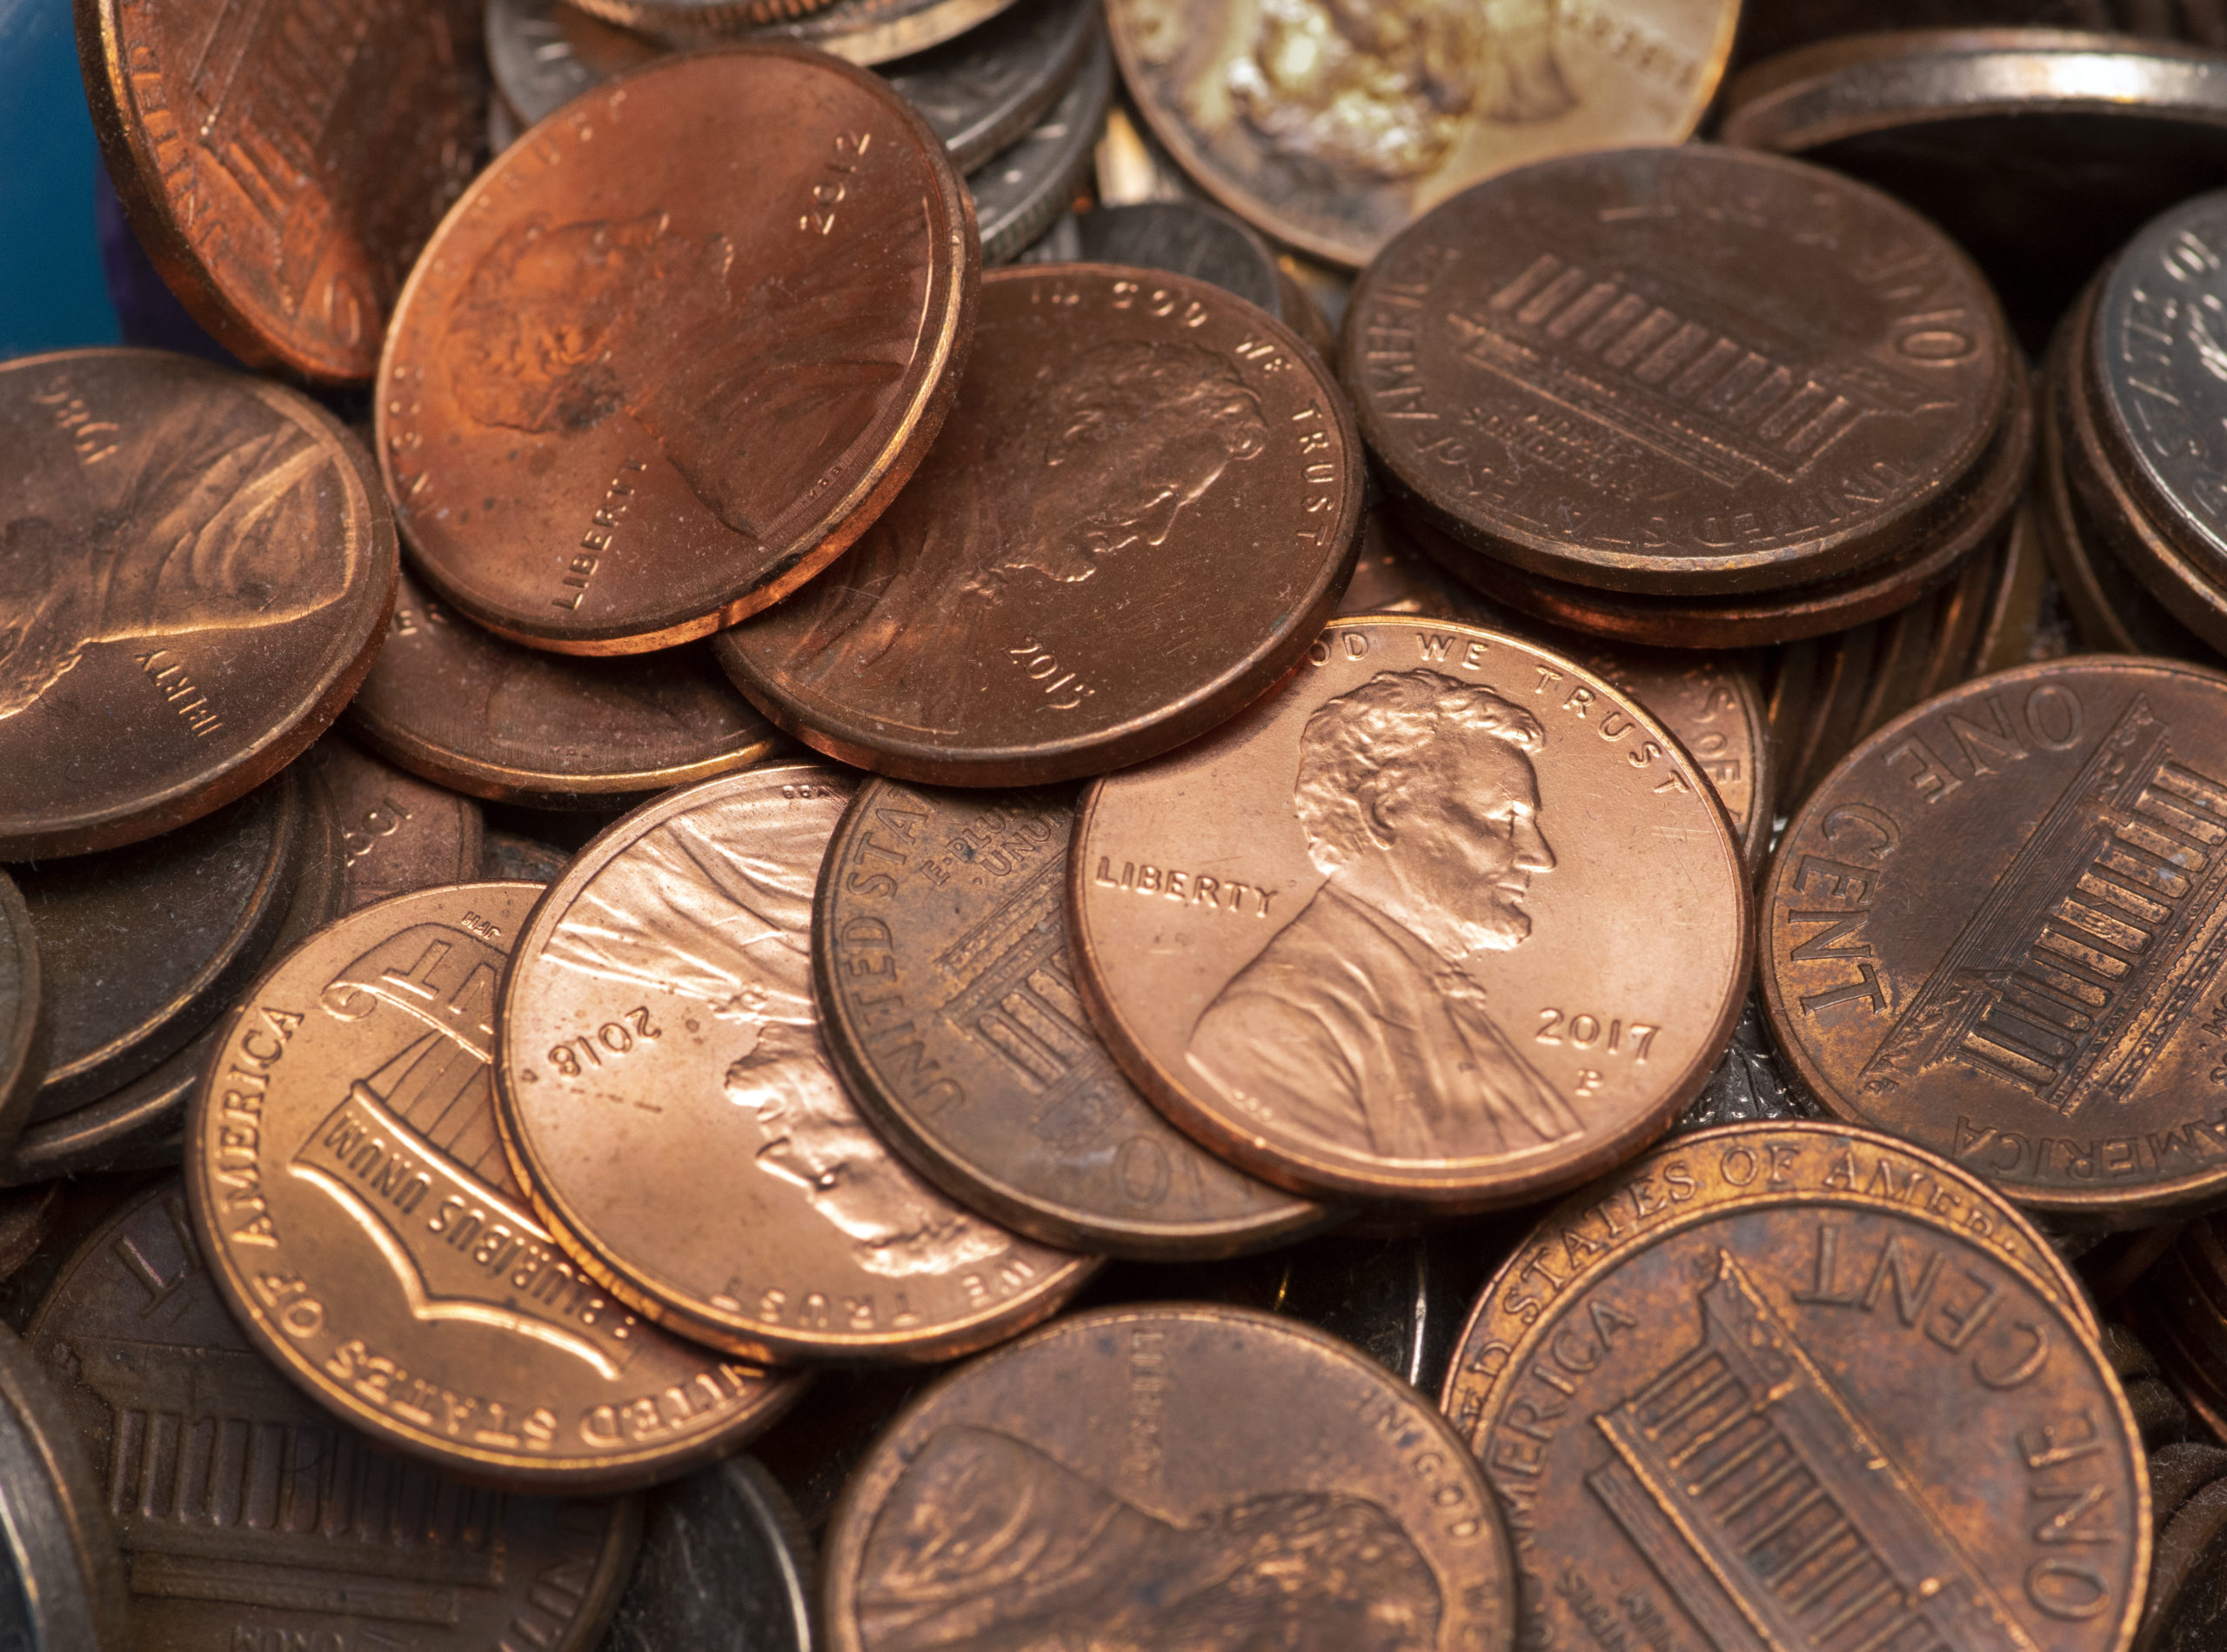 Many Shiny And Dull Copper Us Pennies Piled Together